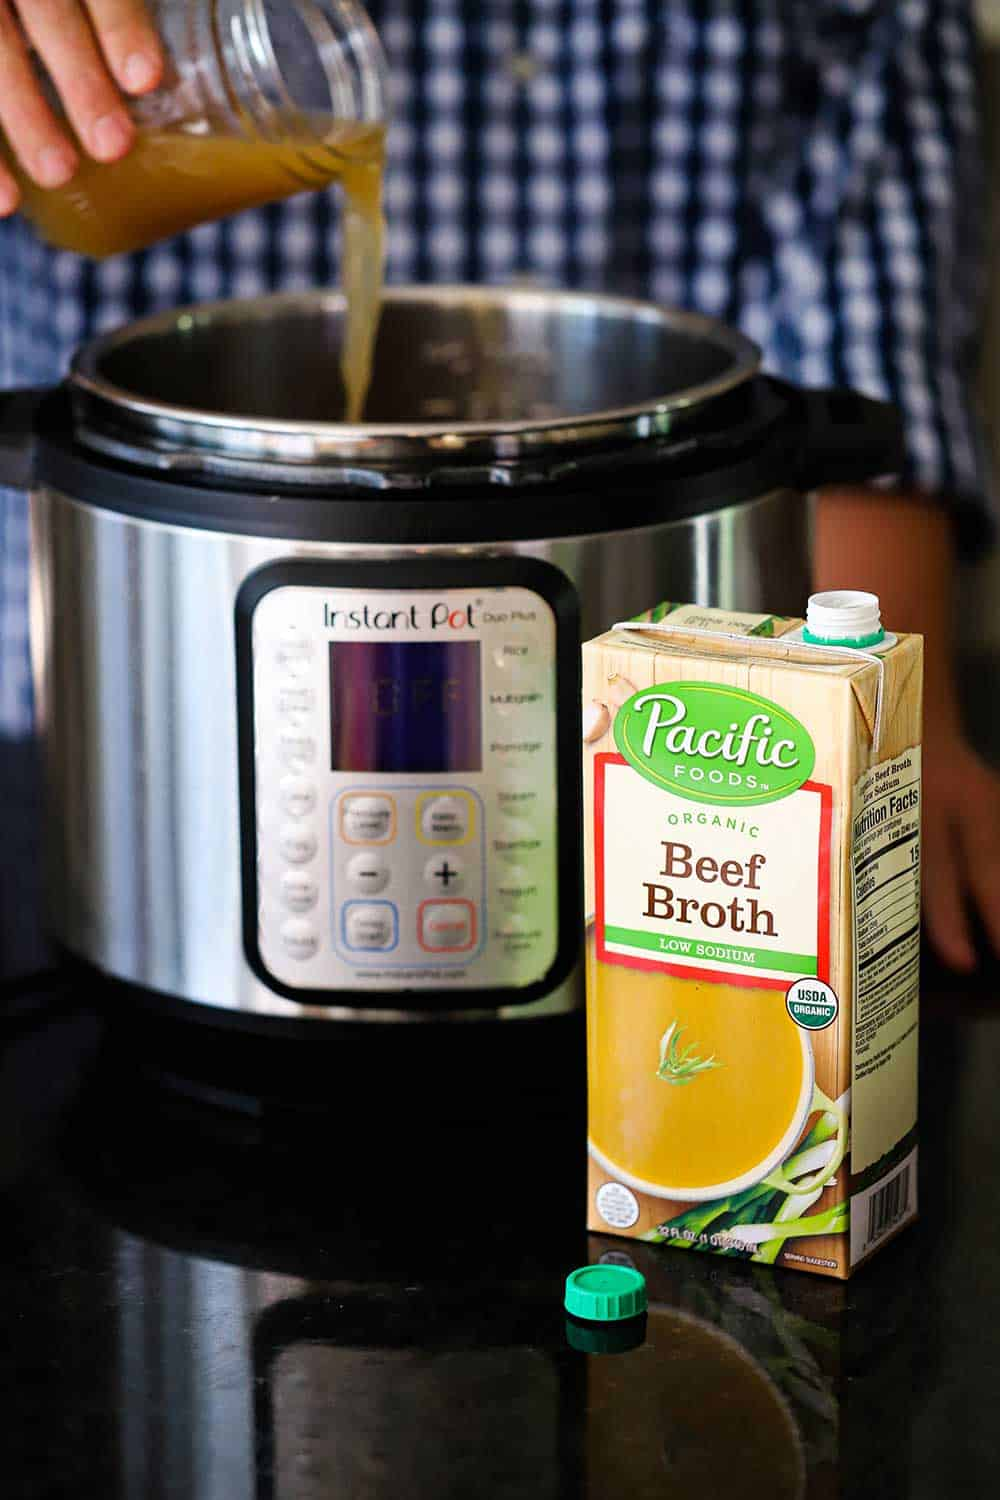 A person pouring beef broth from a jar into an Instant Pot with a box of the broth in front.